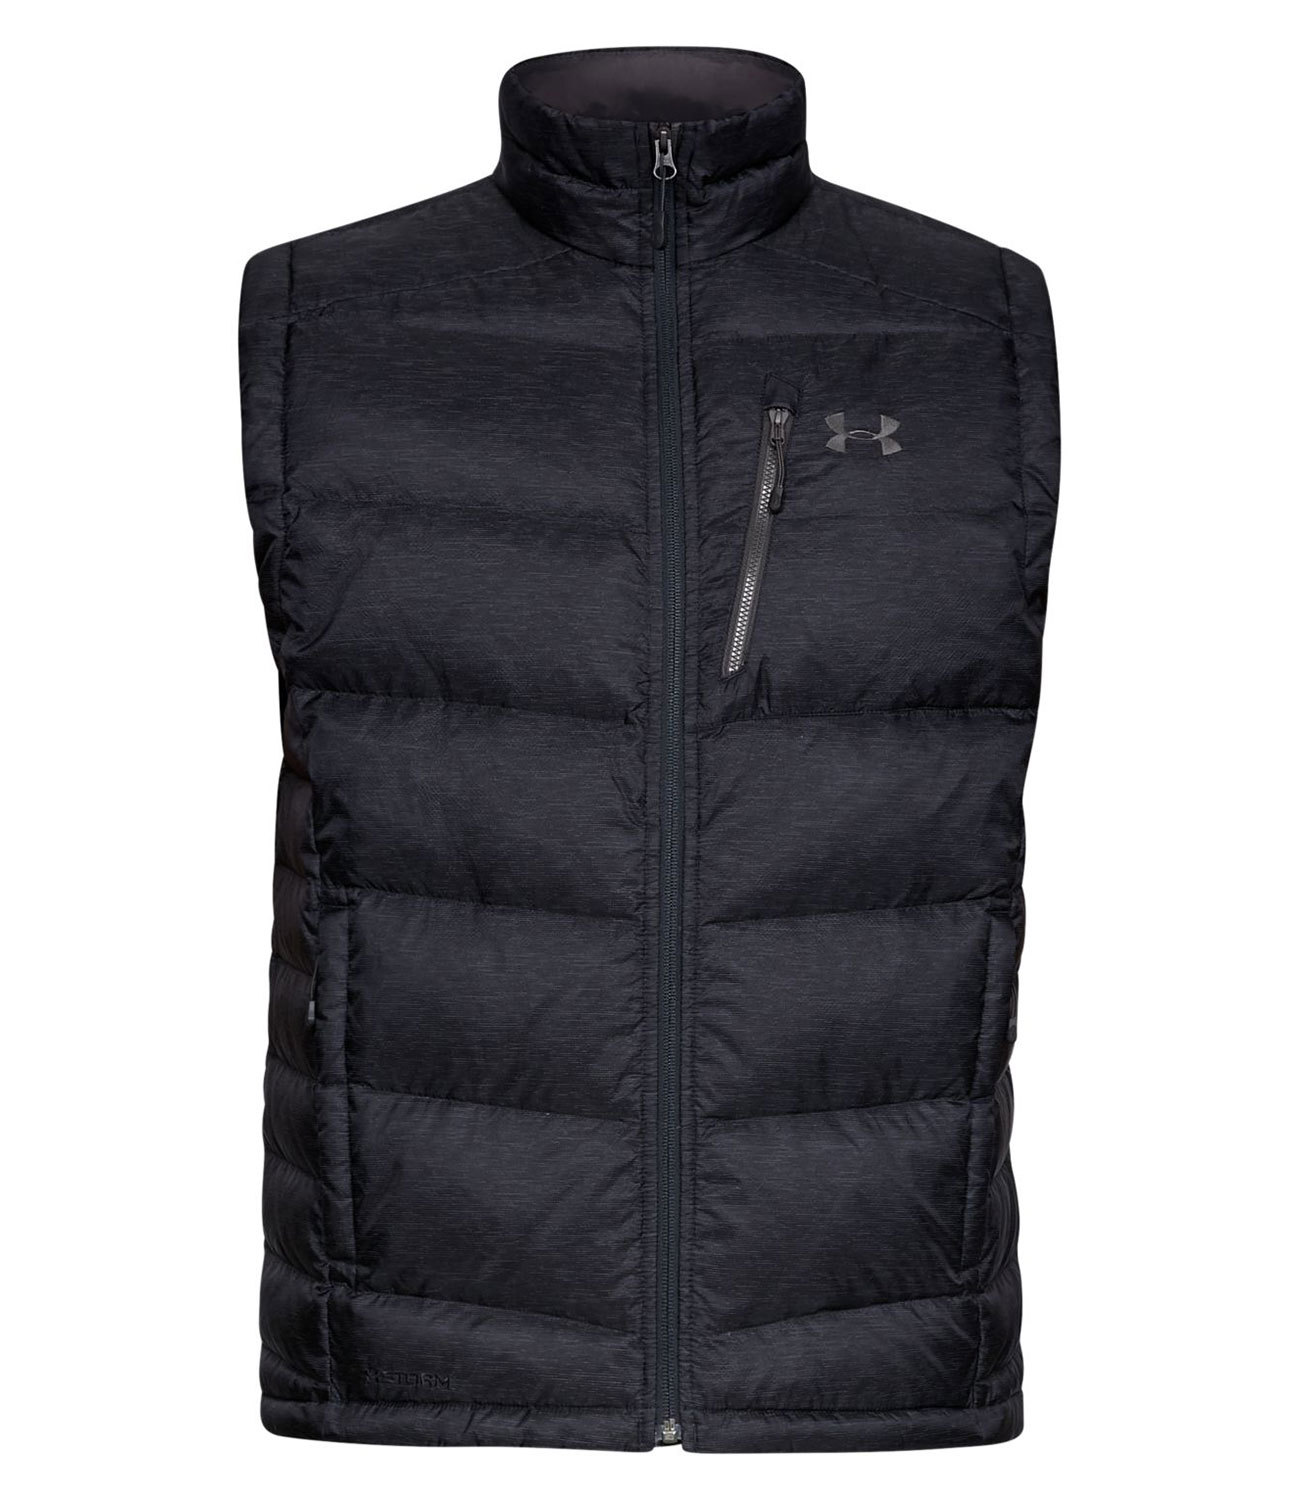 Жилет для бега Under Armour Outerbound Down Vest  1323835-001